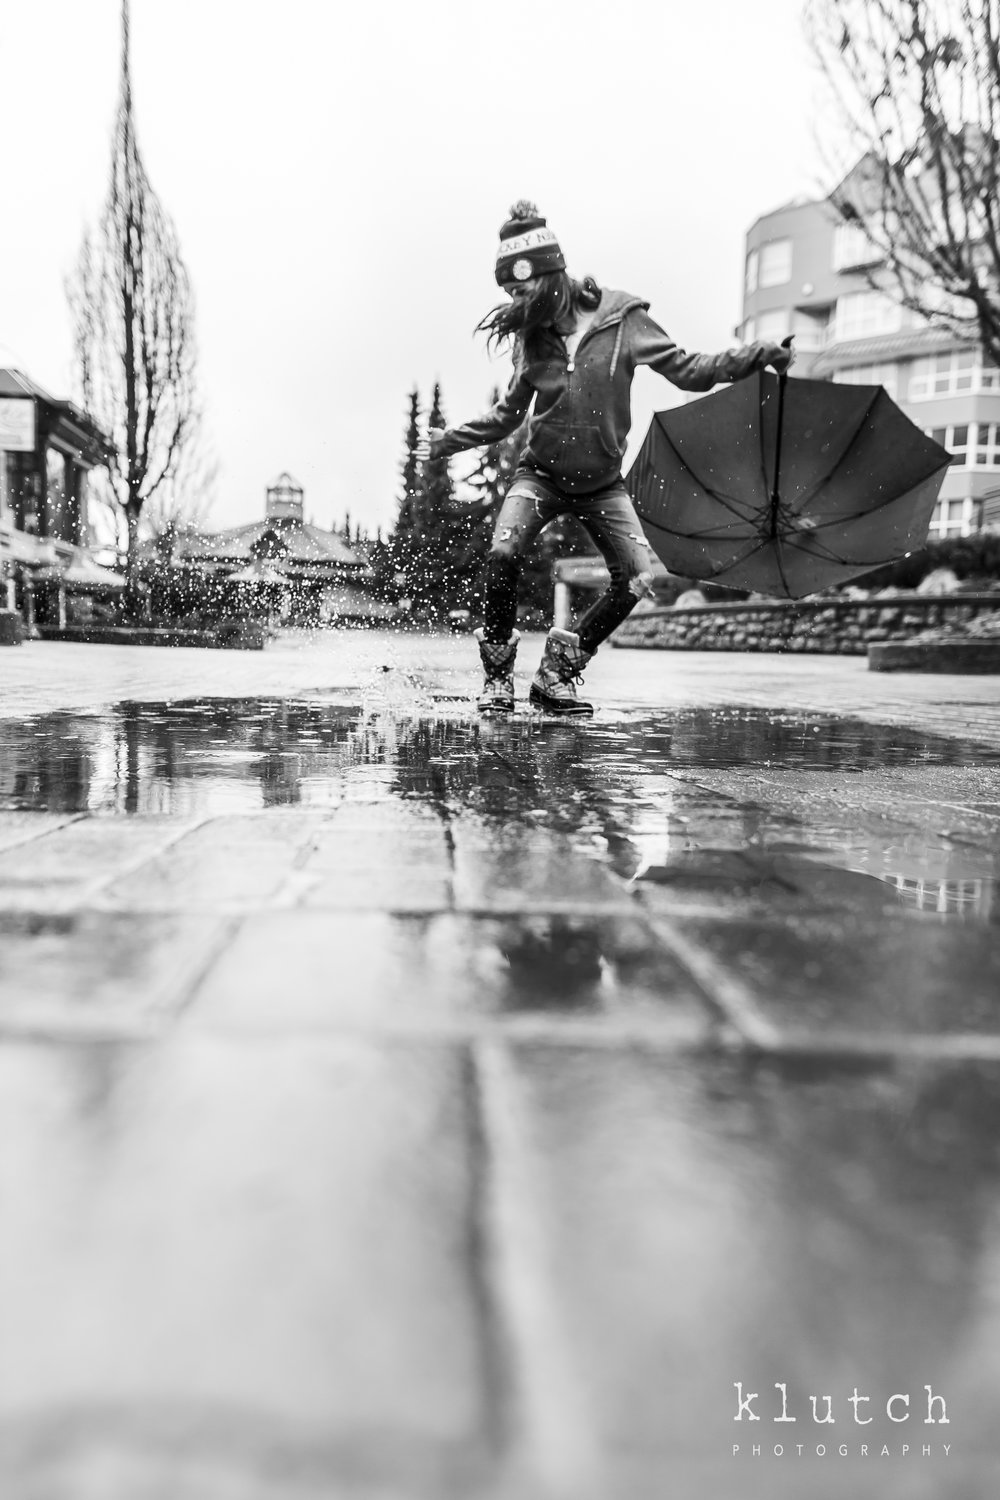 girl jumping in puddle-Surrey Family Photographer. Vancouver family photographer, klutch Photography, documentary photography, Vancouver documentary photographer, candid photography, lifestyle photographer, a day in the life session, family photography, Vancouver Photographer, Surrey Family Photographer, White Rock family Photographer, Dina Ferreira Stoddard-6380.jpg